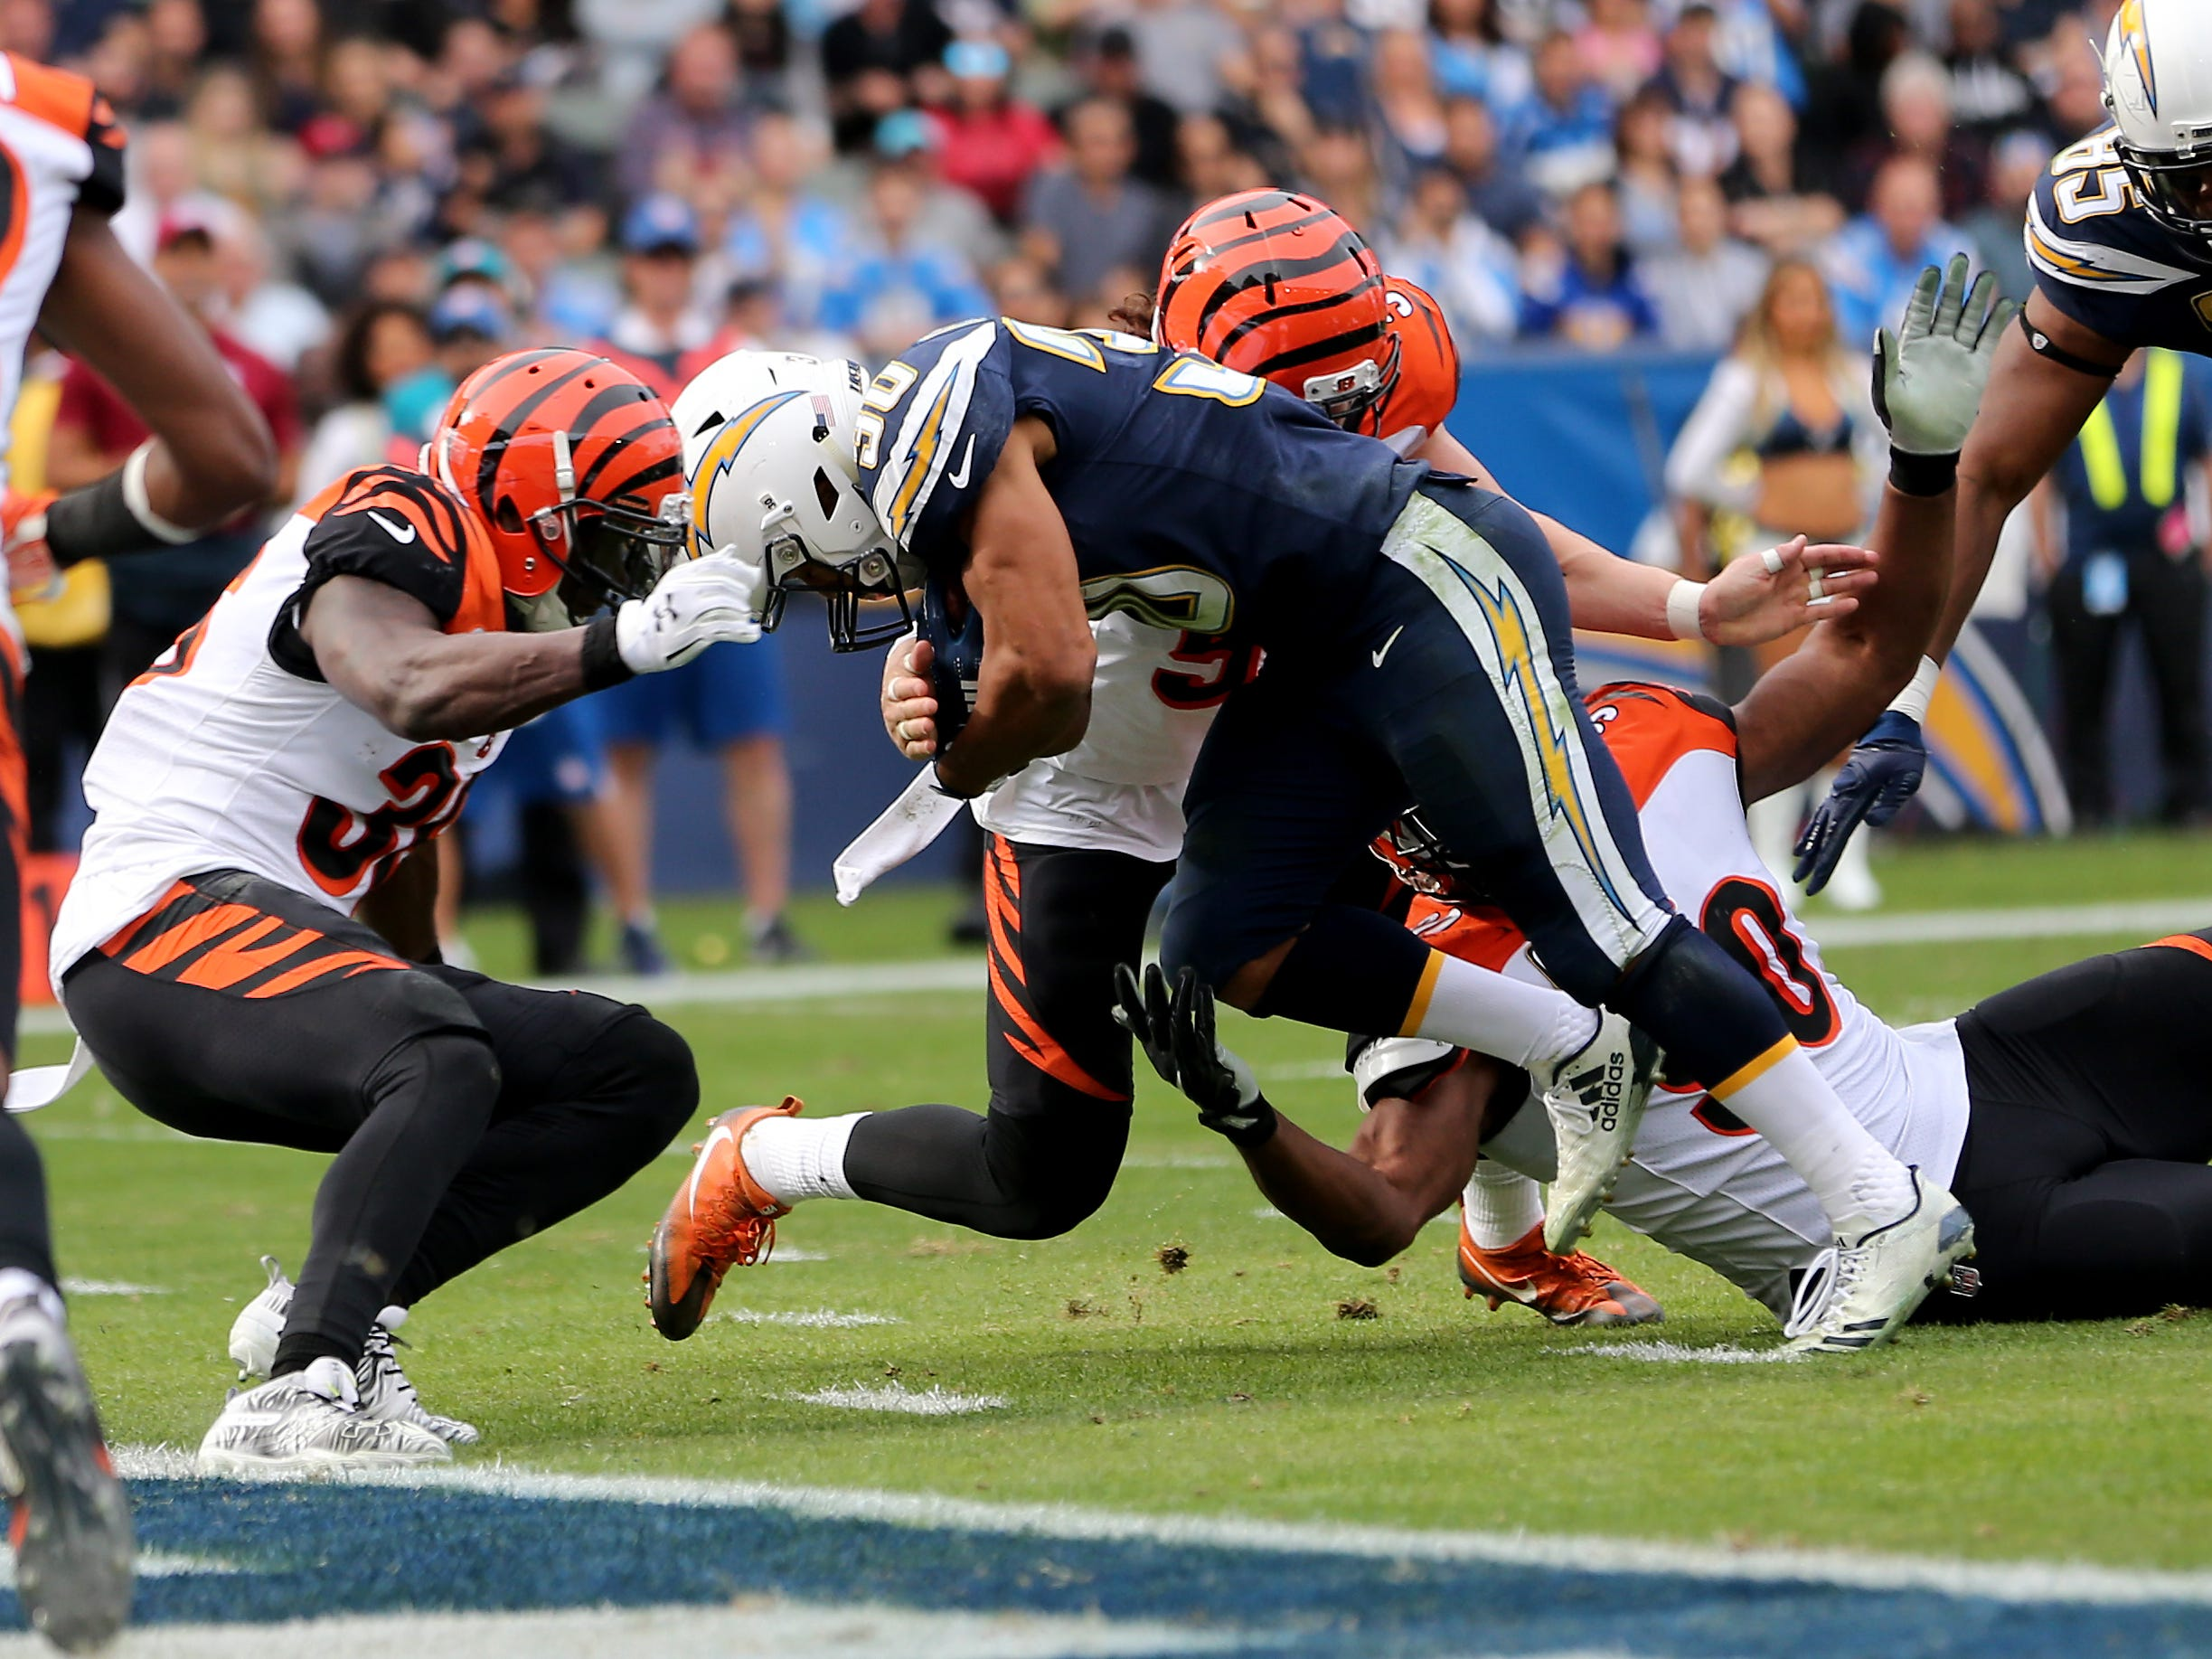 Los Angeles Chargers running back Austin Ekeler (30) scores a touchdown in the second quarter of a Week 14 NFL football game against the Cincinnati Bengals, Sunday, Dec. 9, 2018, at StubHub Center in Carson, California.